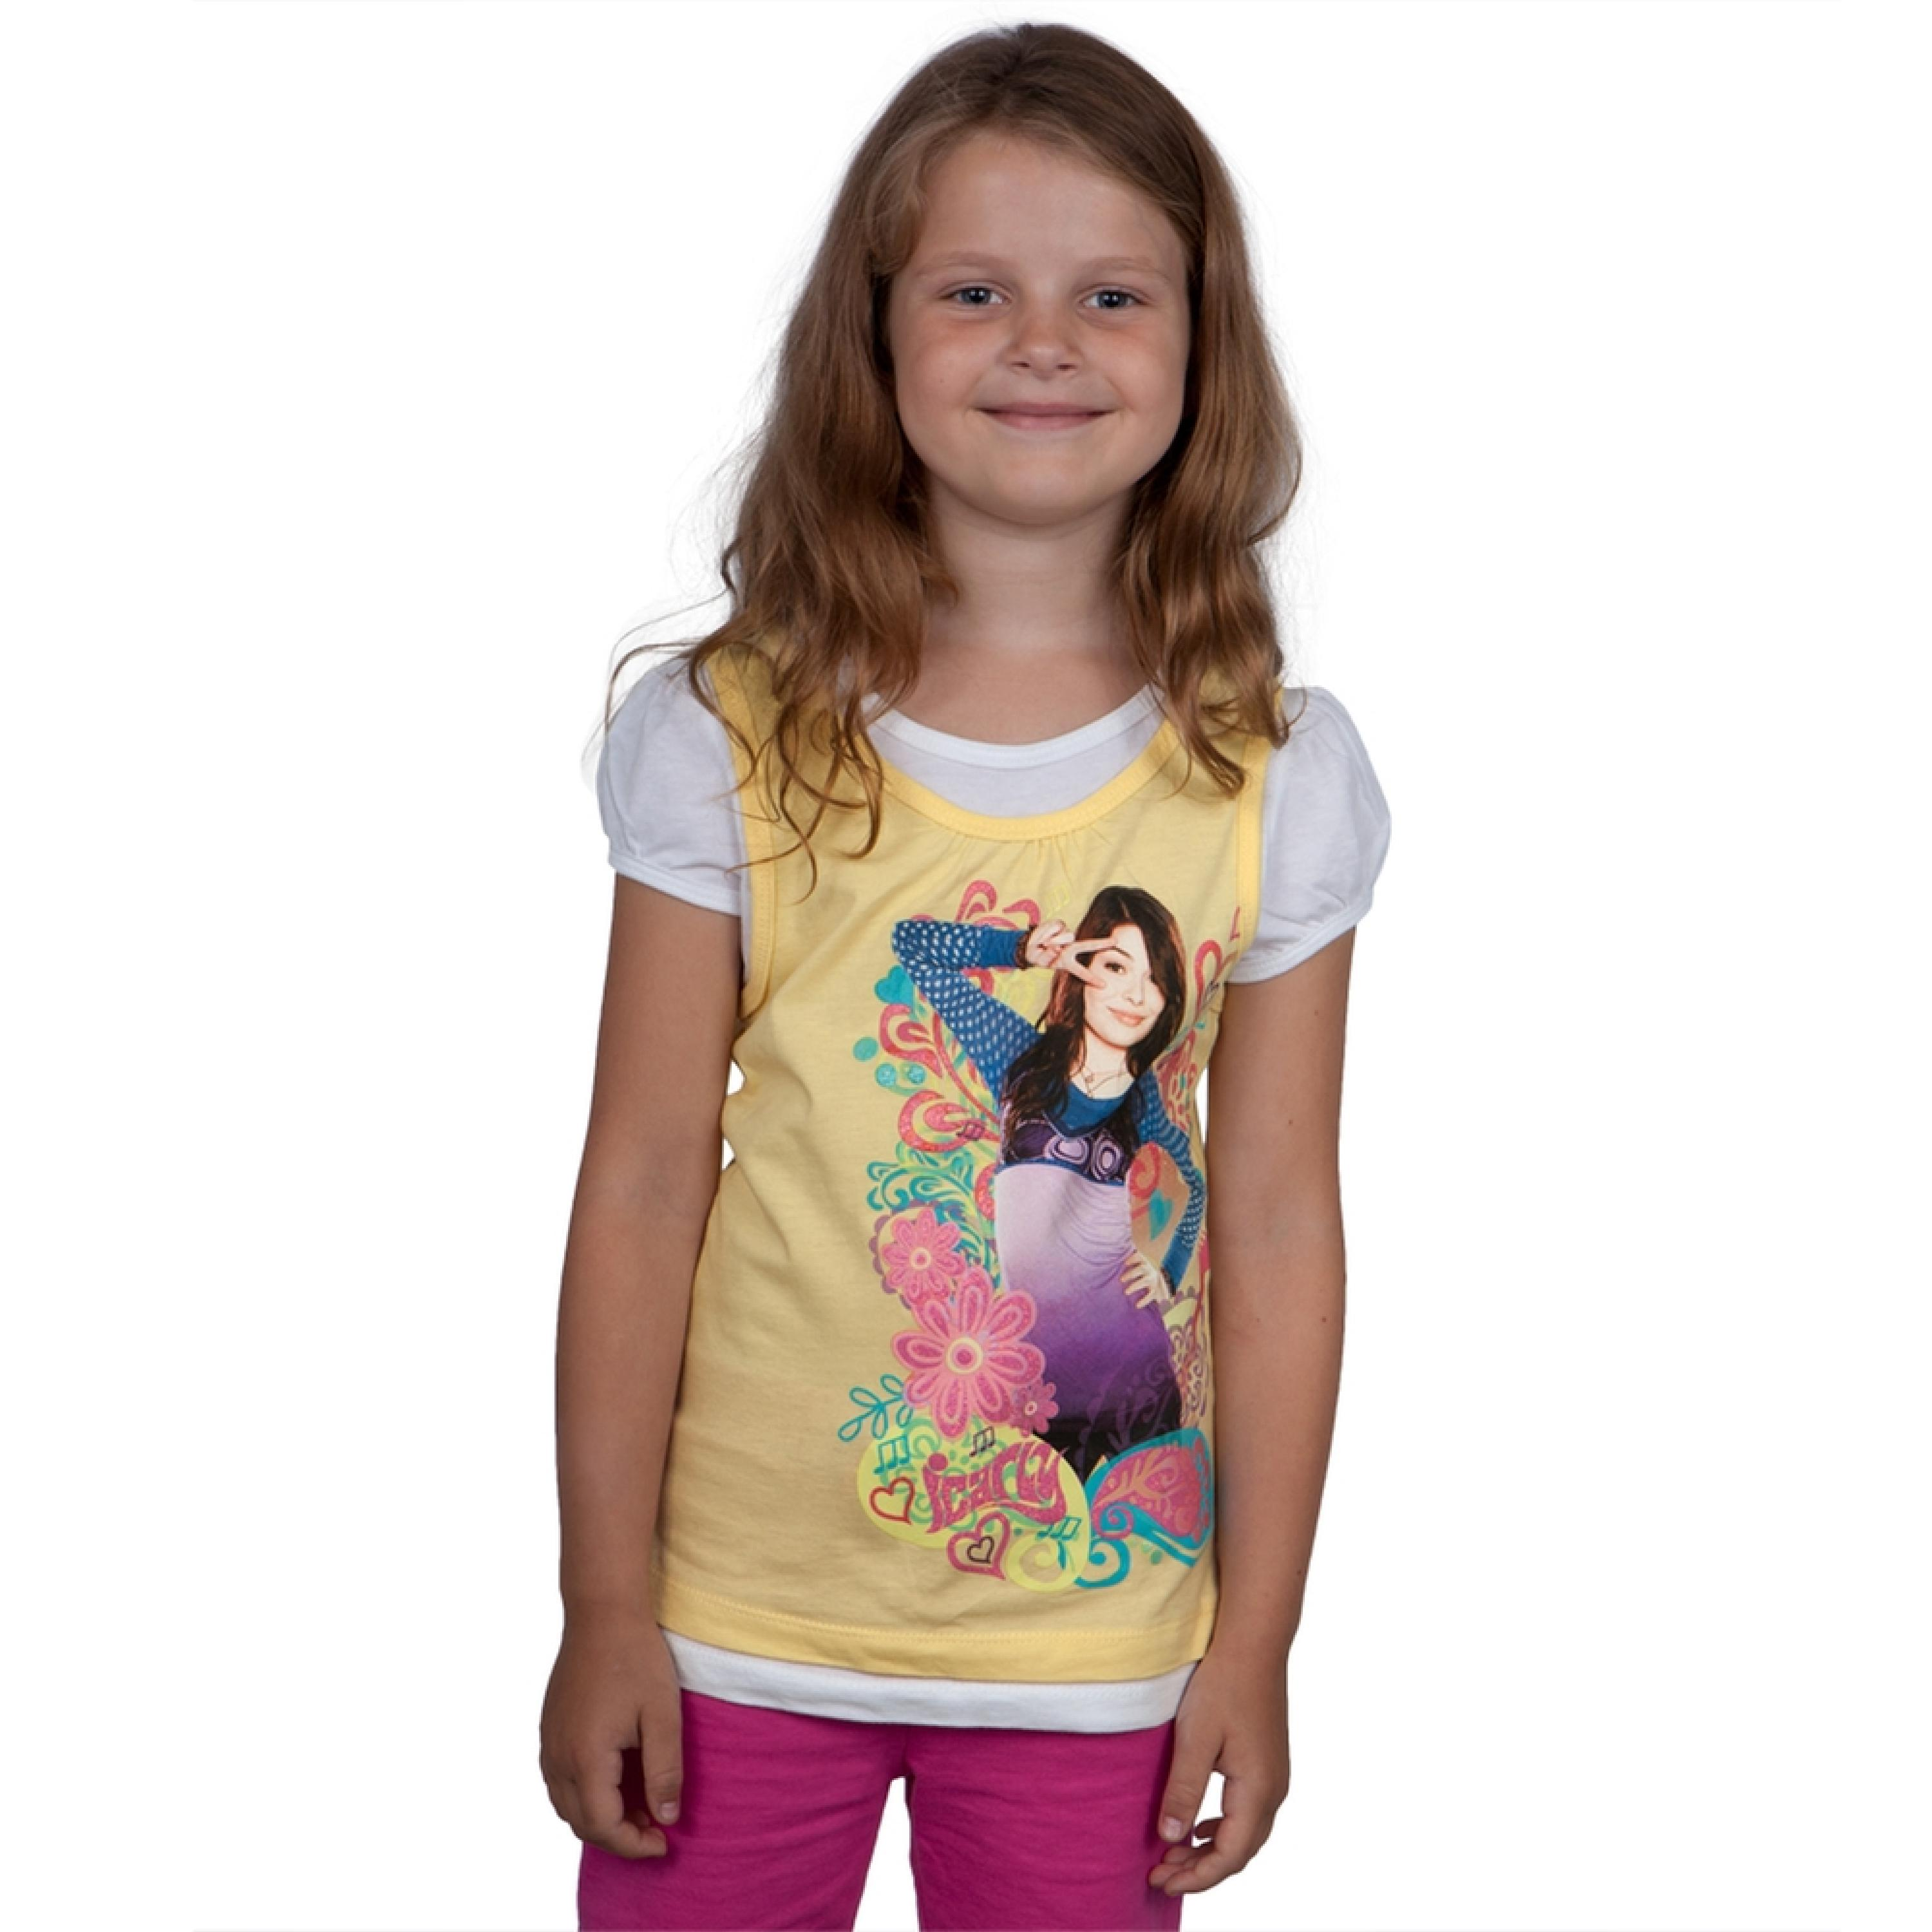 iCarly - Peace Sign Girls Juvy Short Sleeve 2fer